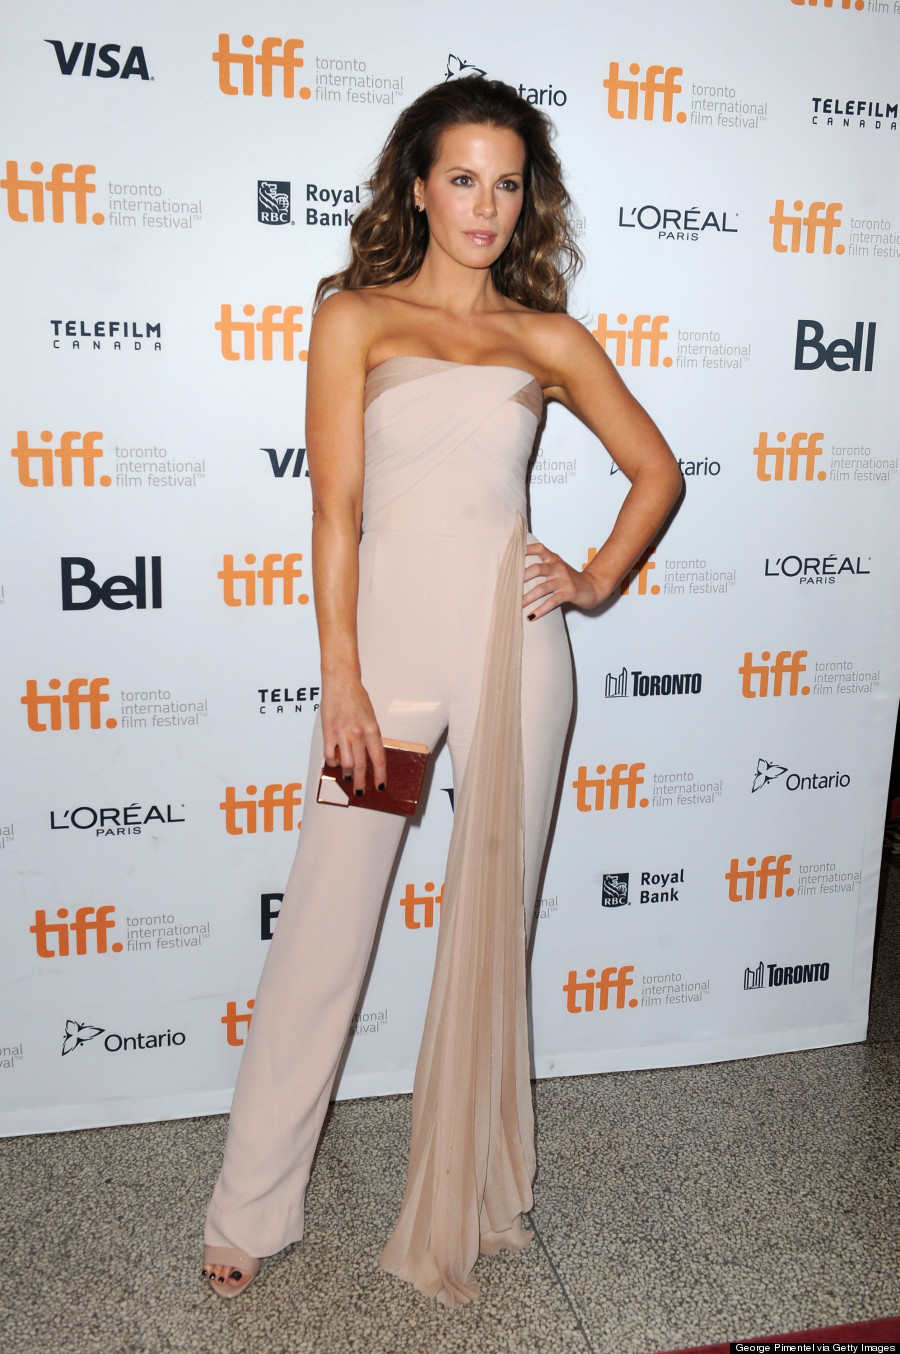 Kate Beckinsale TIFF 2014 Actress Has The Face Of An Angel